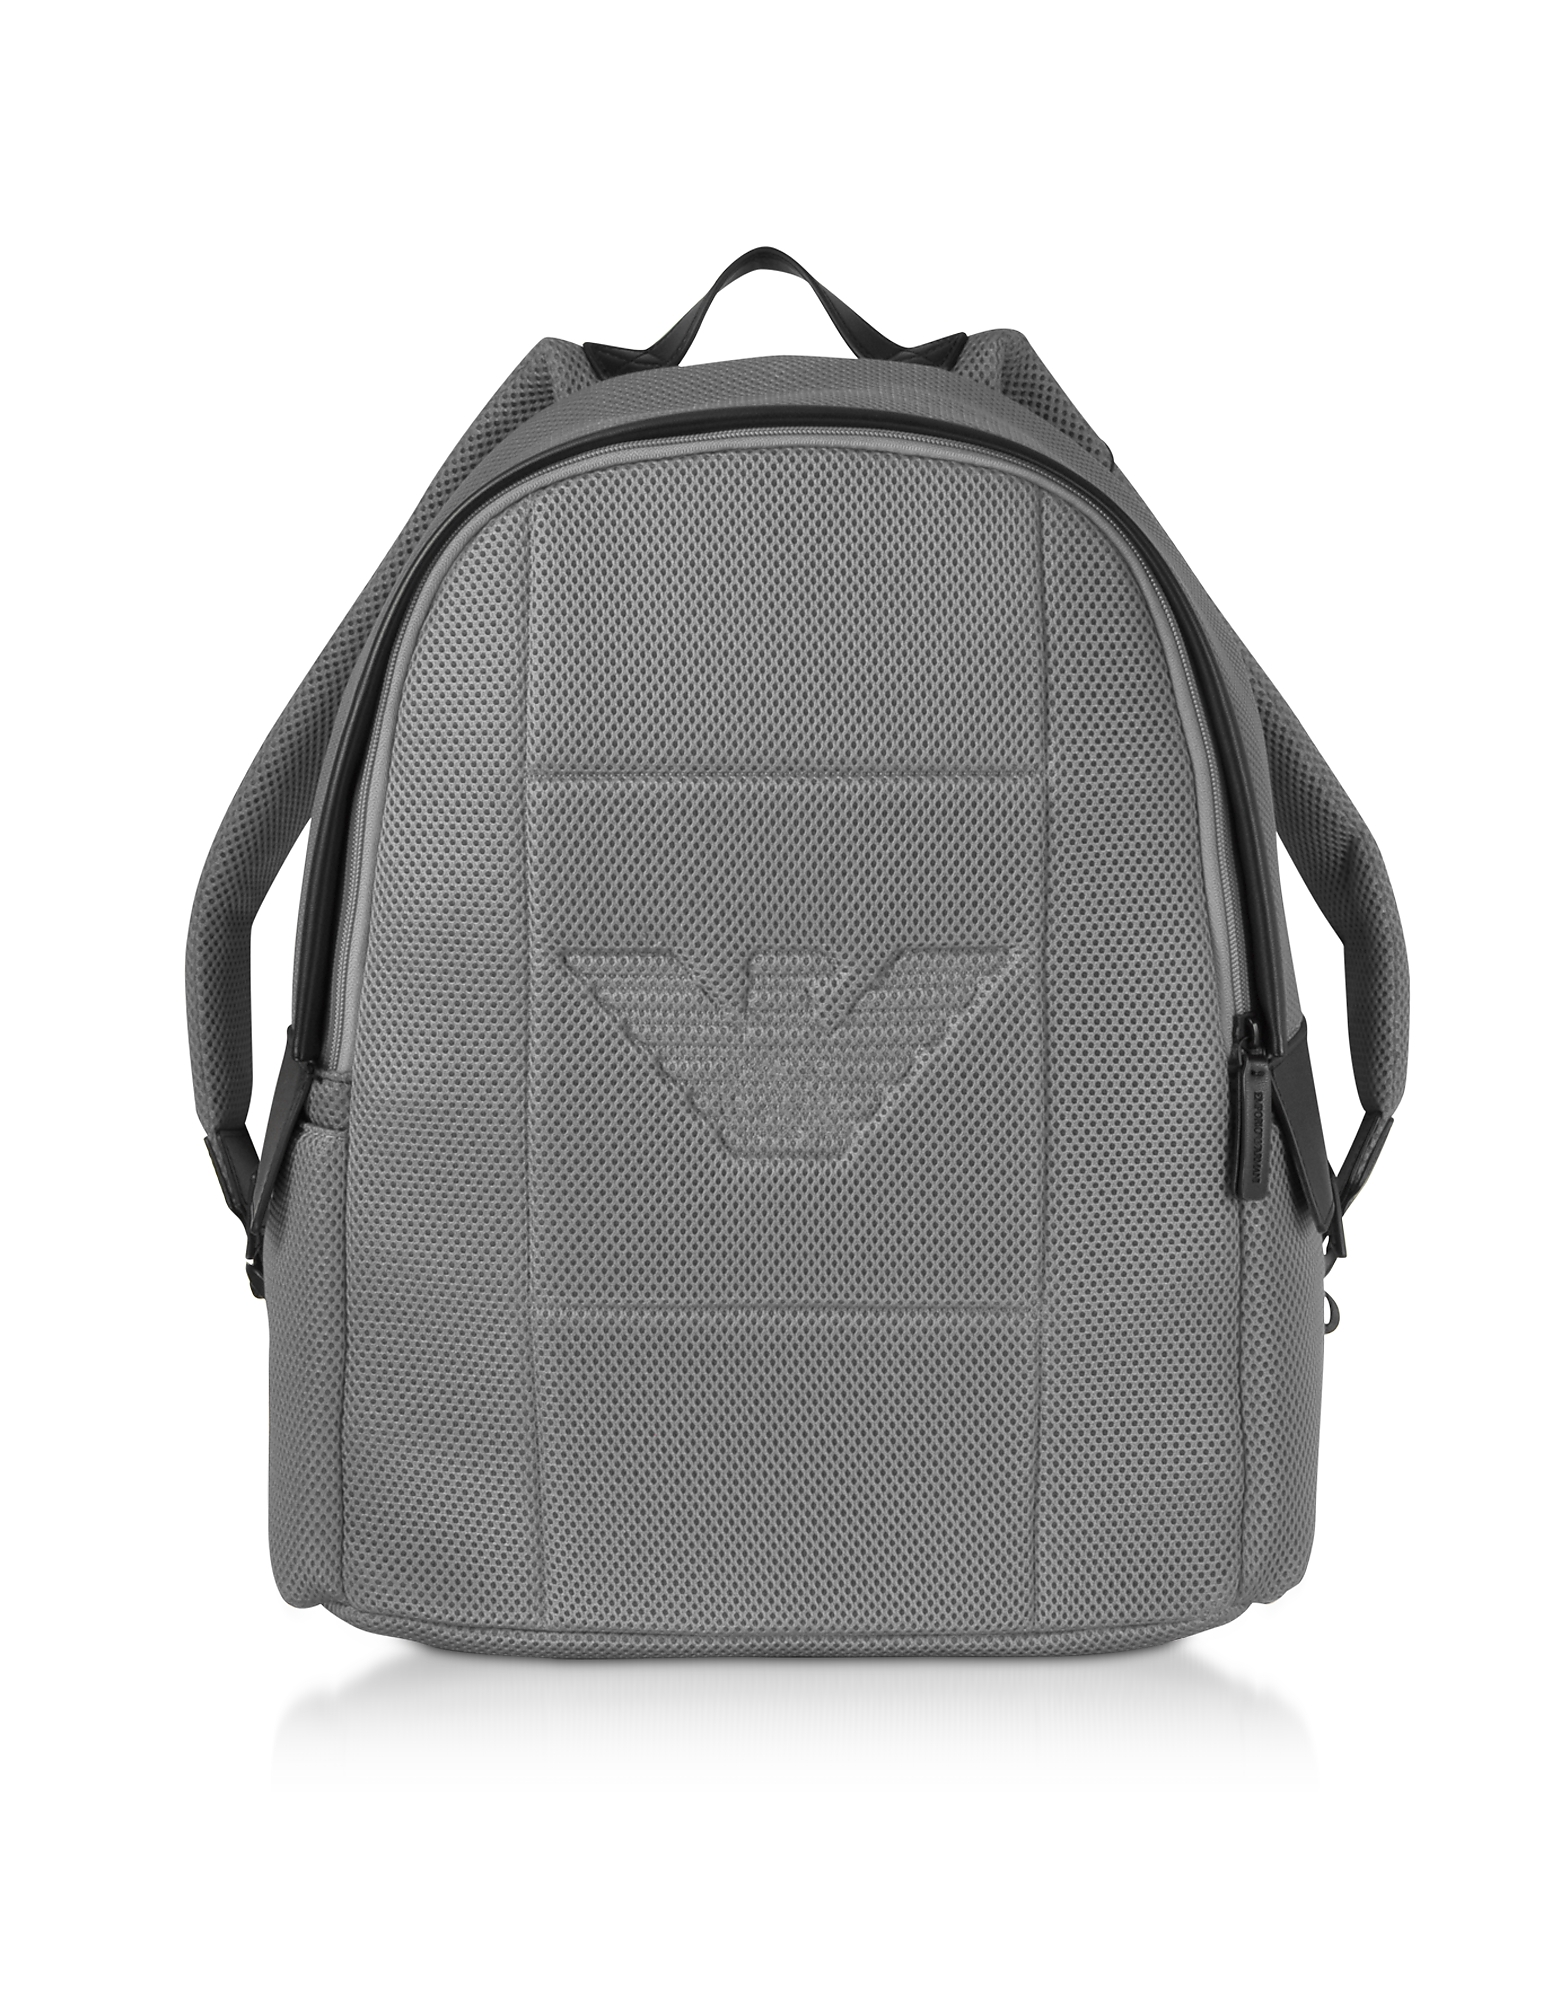 Two-tone Backpack w/ Side Pockets, Black/gray